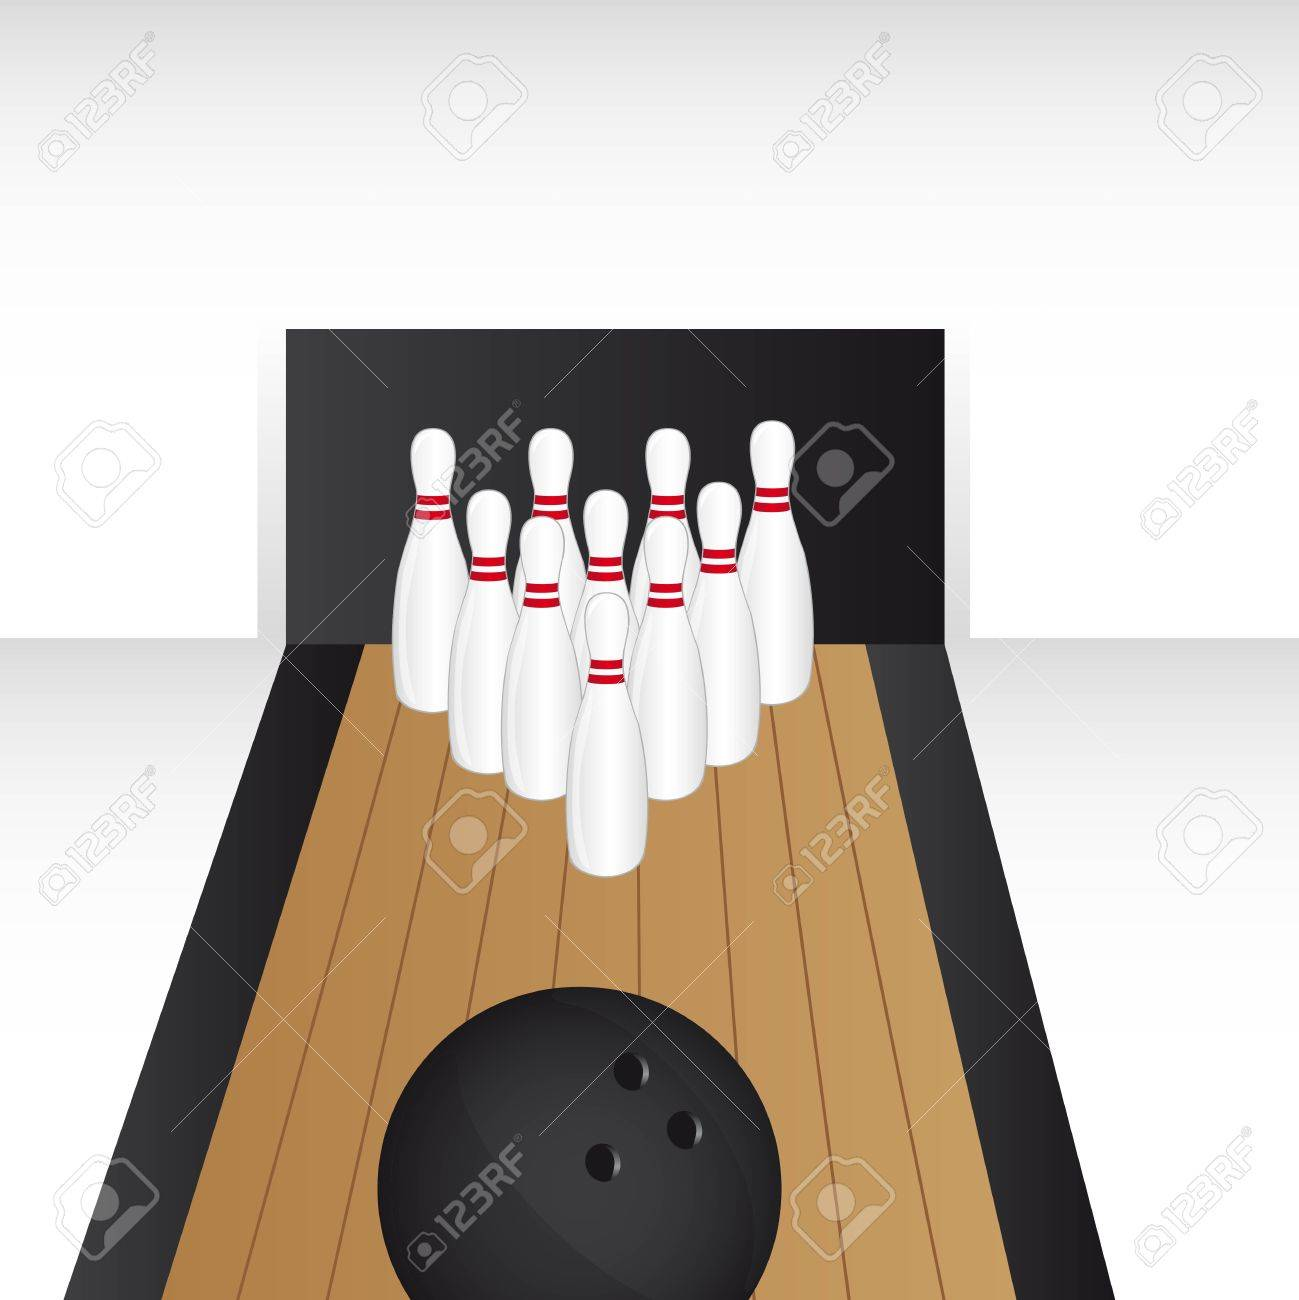 bowling alley with bowling ball vector illustration royalty free rh 123rf com bowling alley clipart free Cartoon Bowling Pins